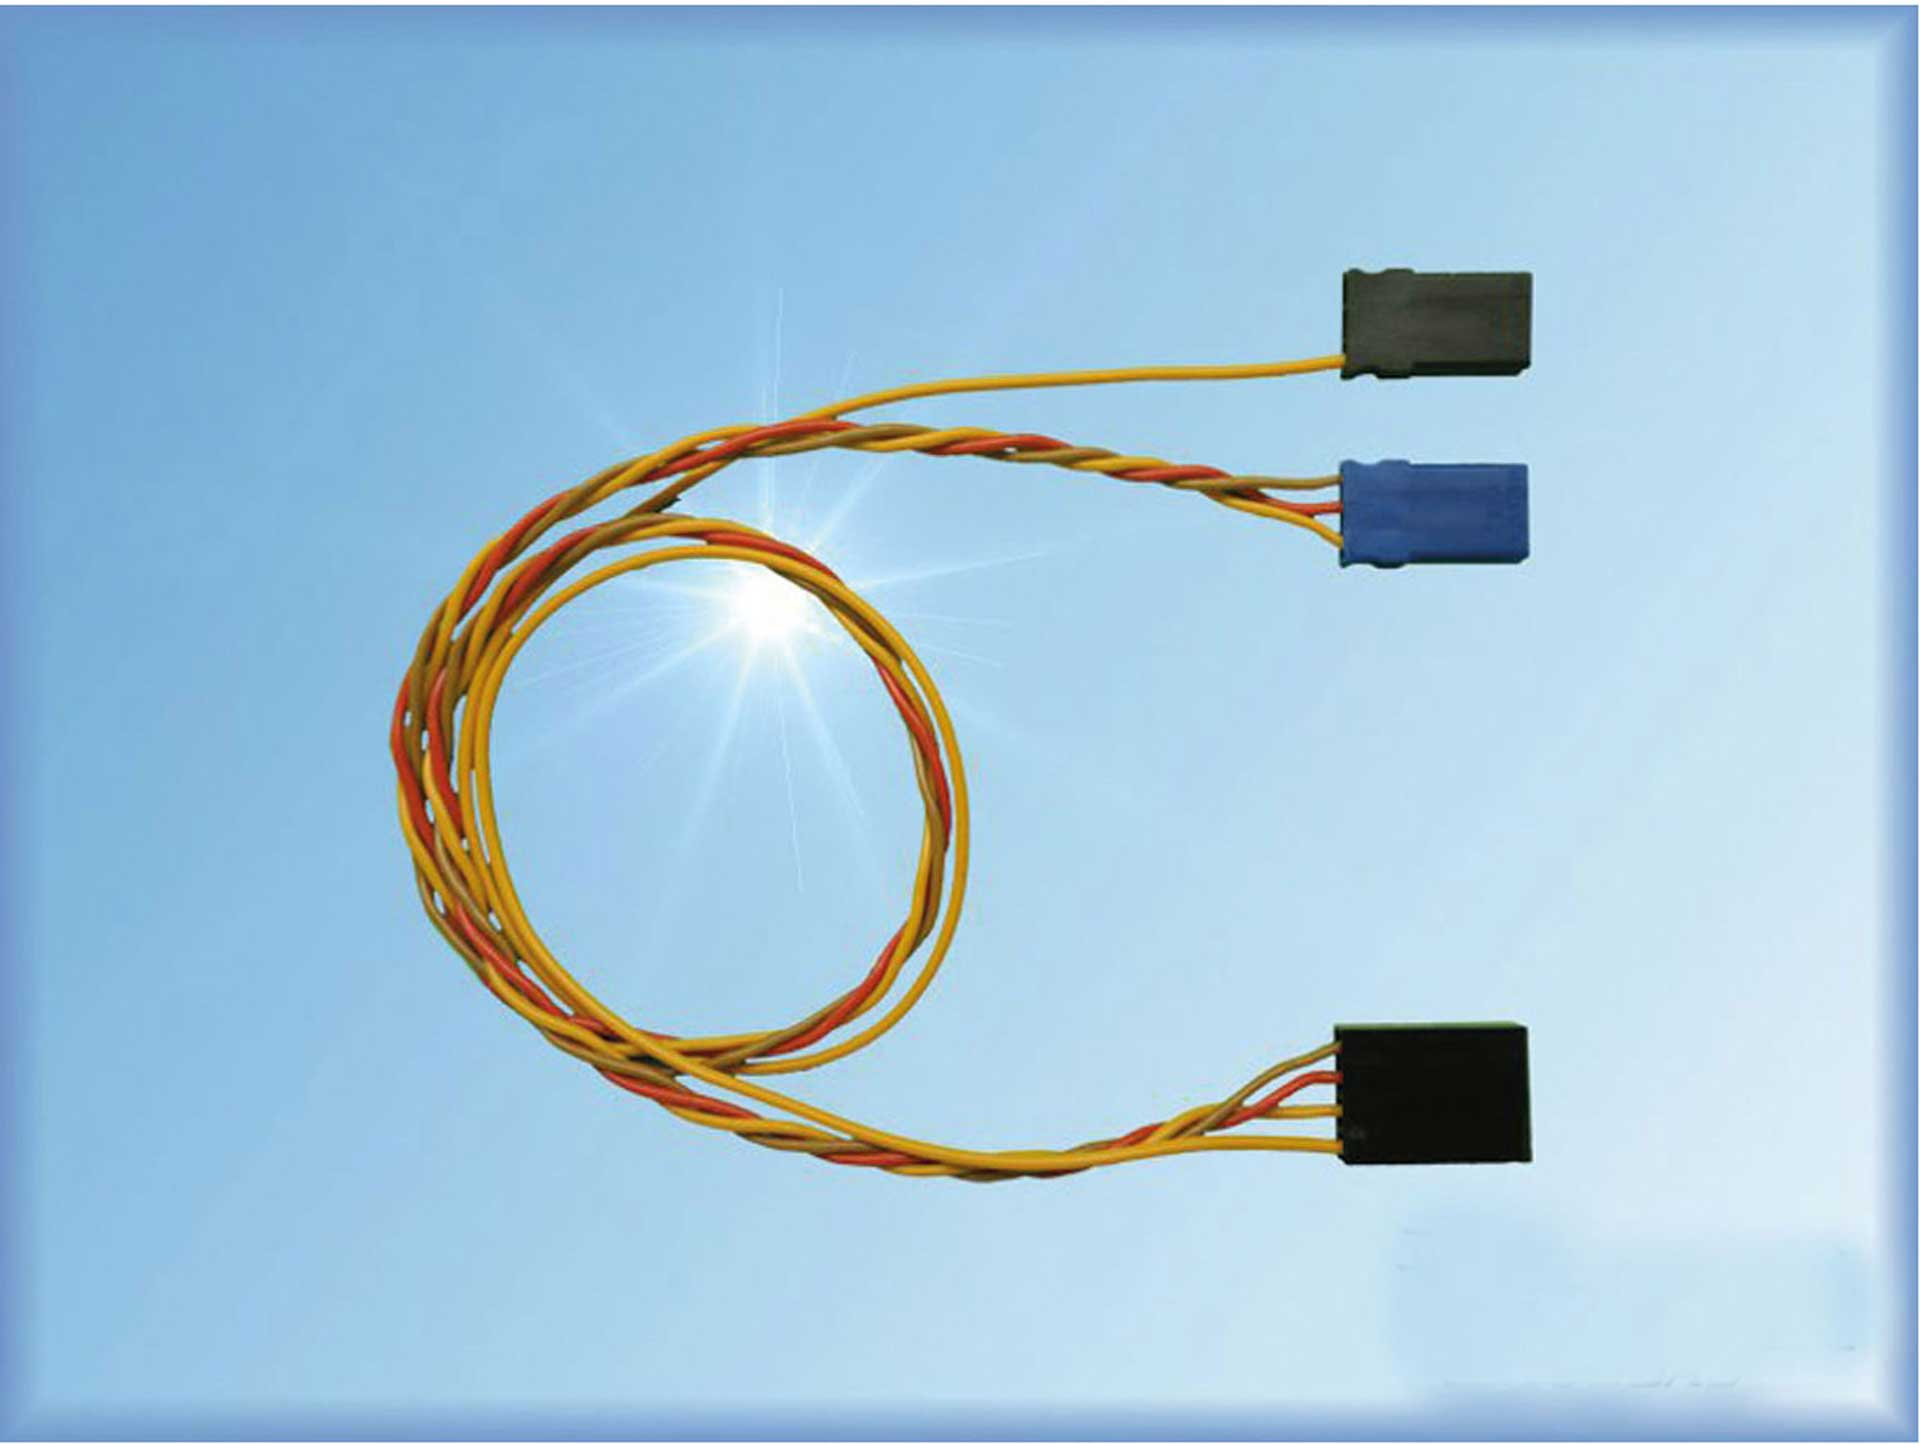 SM-Modellbau TELEMETRY CONNECTION CABLE FOR USISENS-E